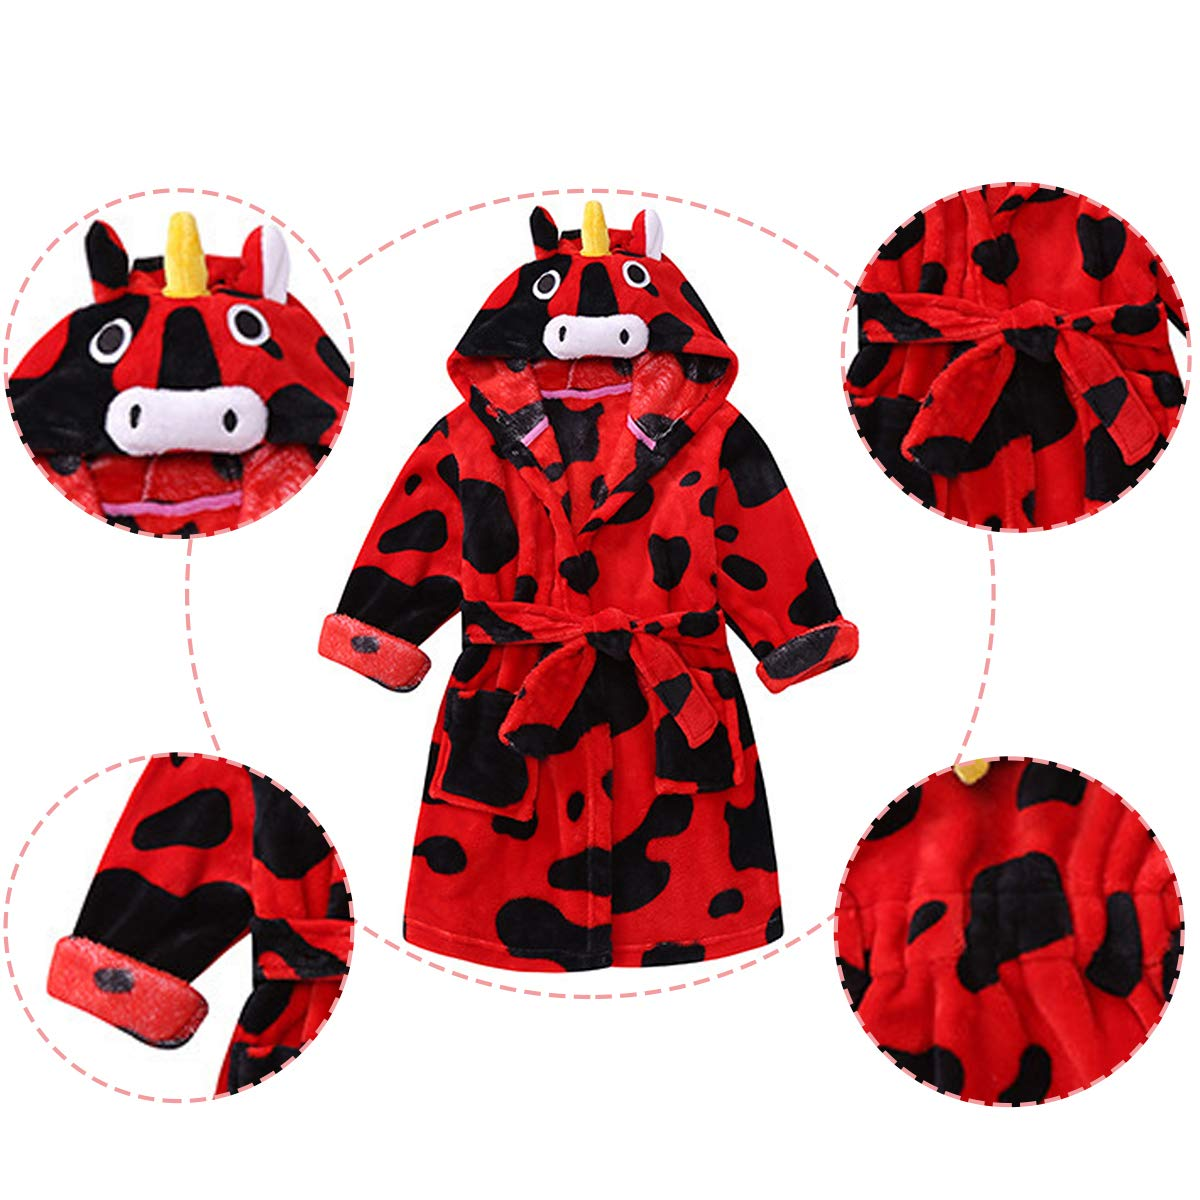 JAJADO Kids Cartoon Animal Hooded Bathrobe Super Soft Coral Fleece Sleepwear Girls Nightgown PJS